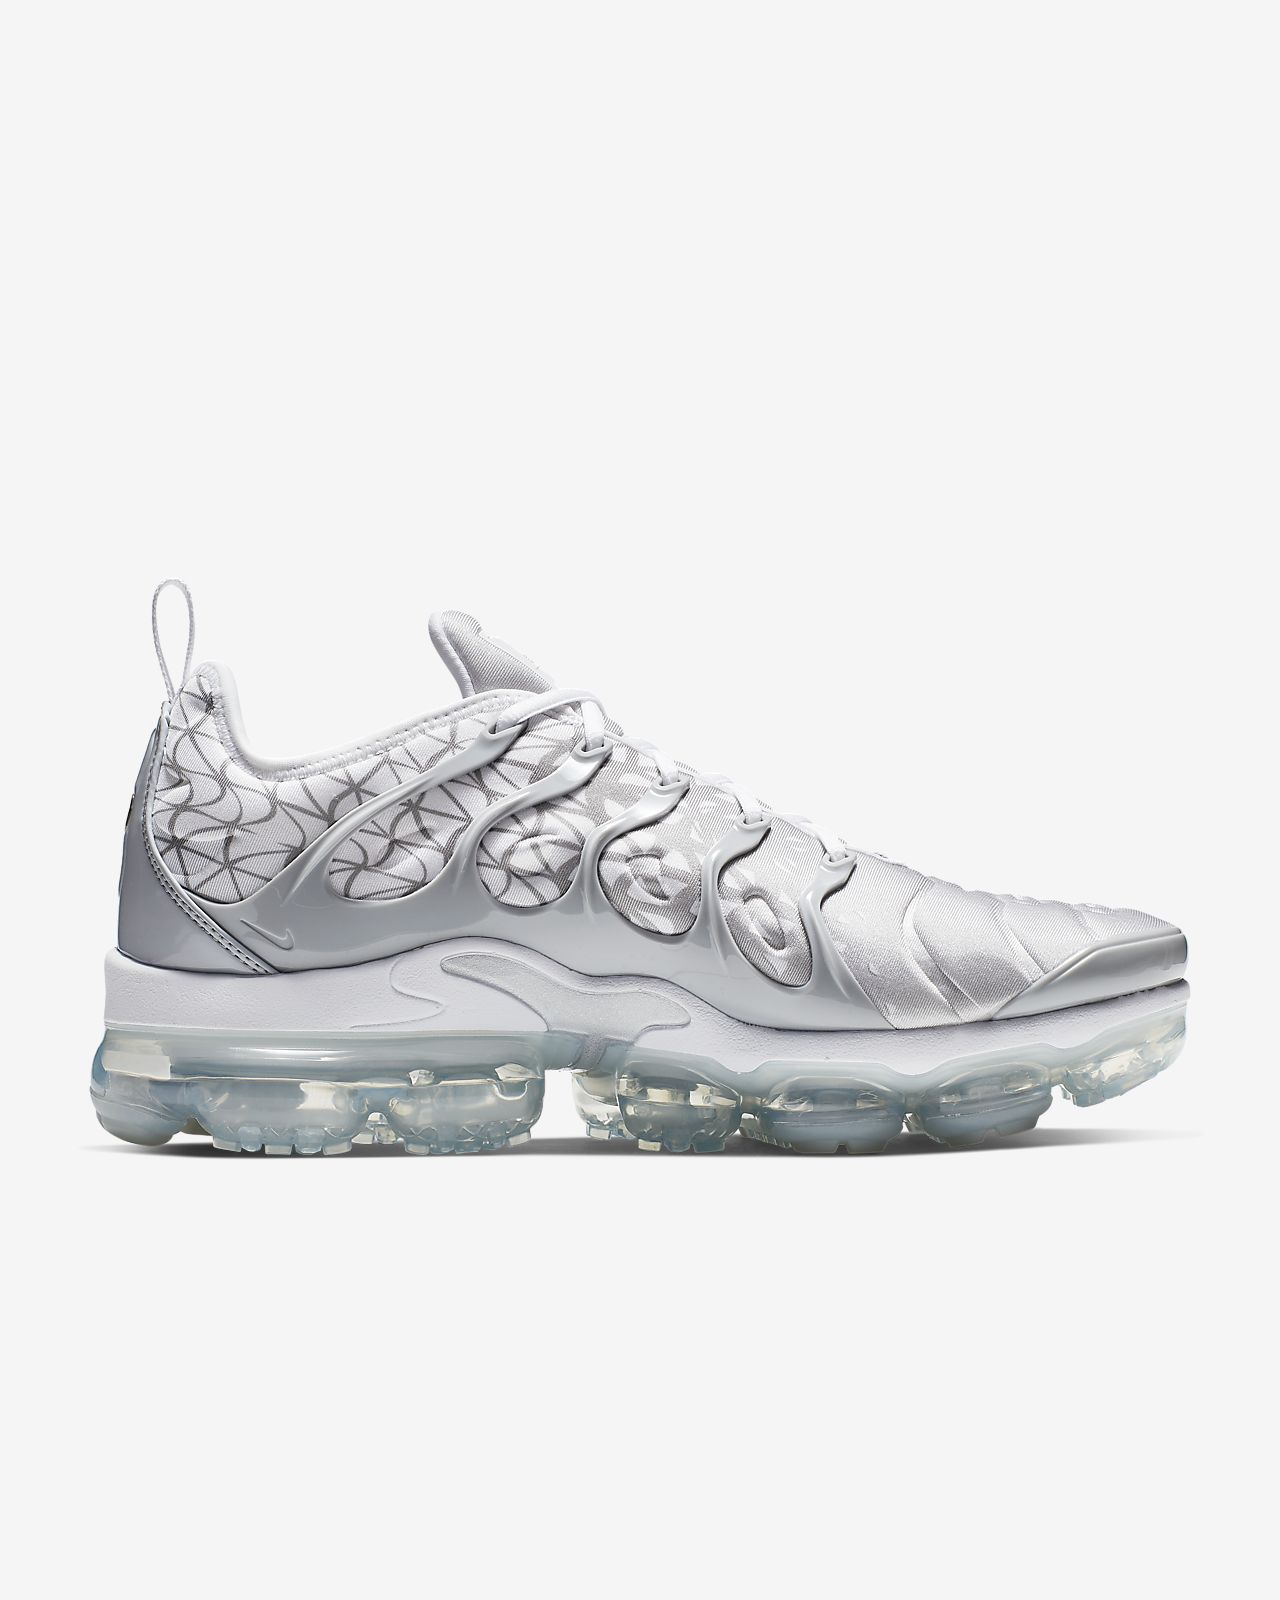 644d2a6152 Nike Air VaporMax Plus Men's Shoe. Nike.com GB